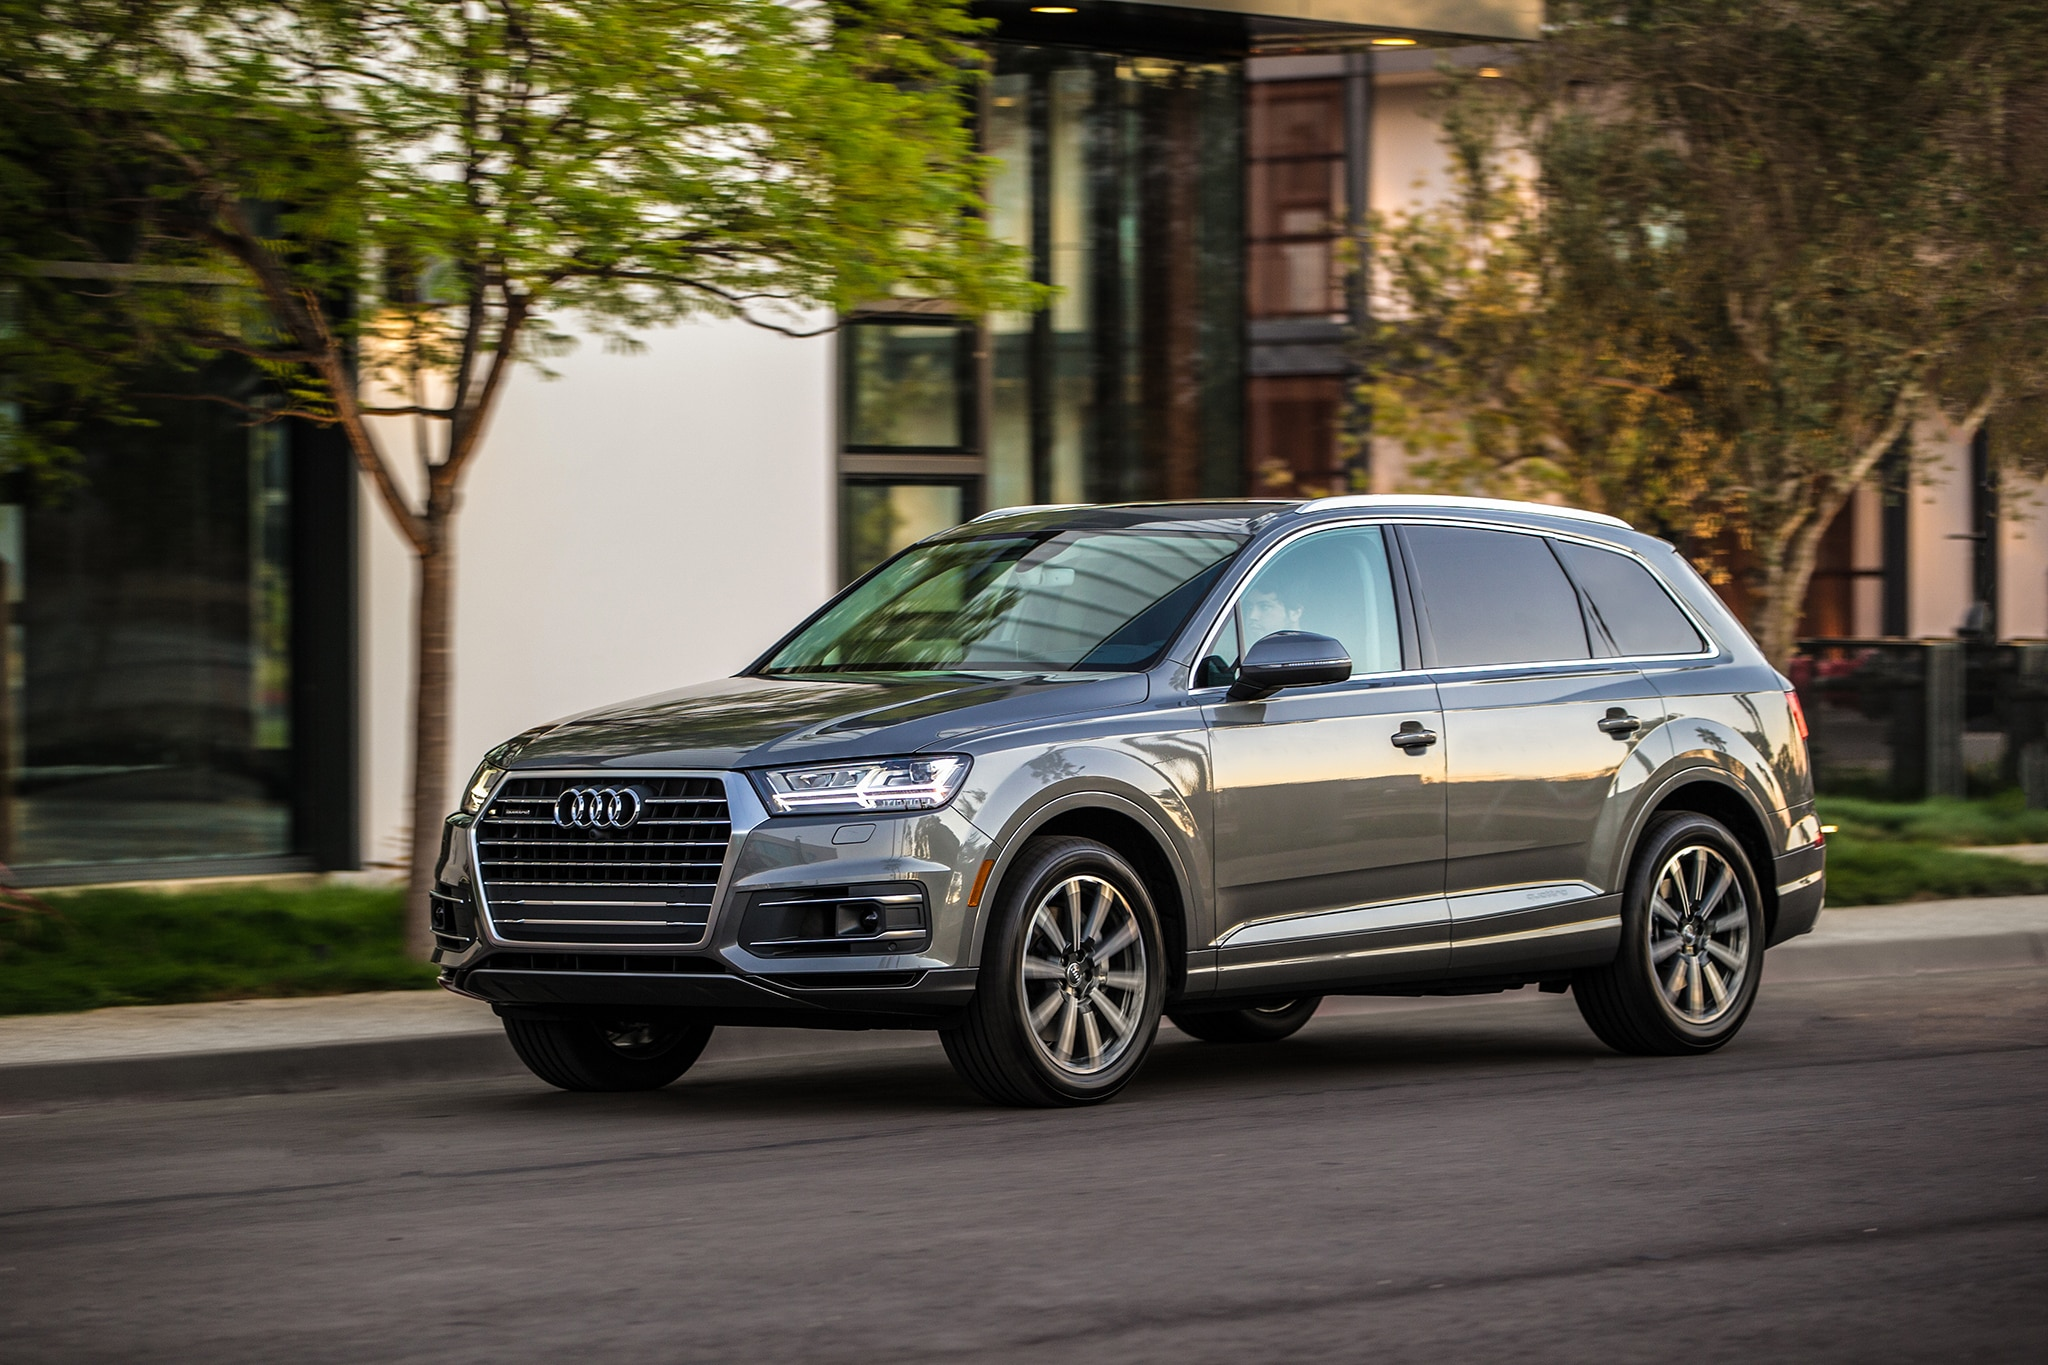 Hauling Family in the Family-Hauling Audi Q7 | Automobile